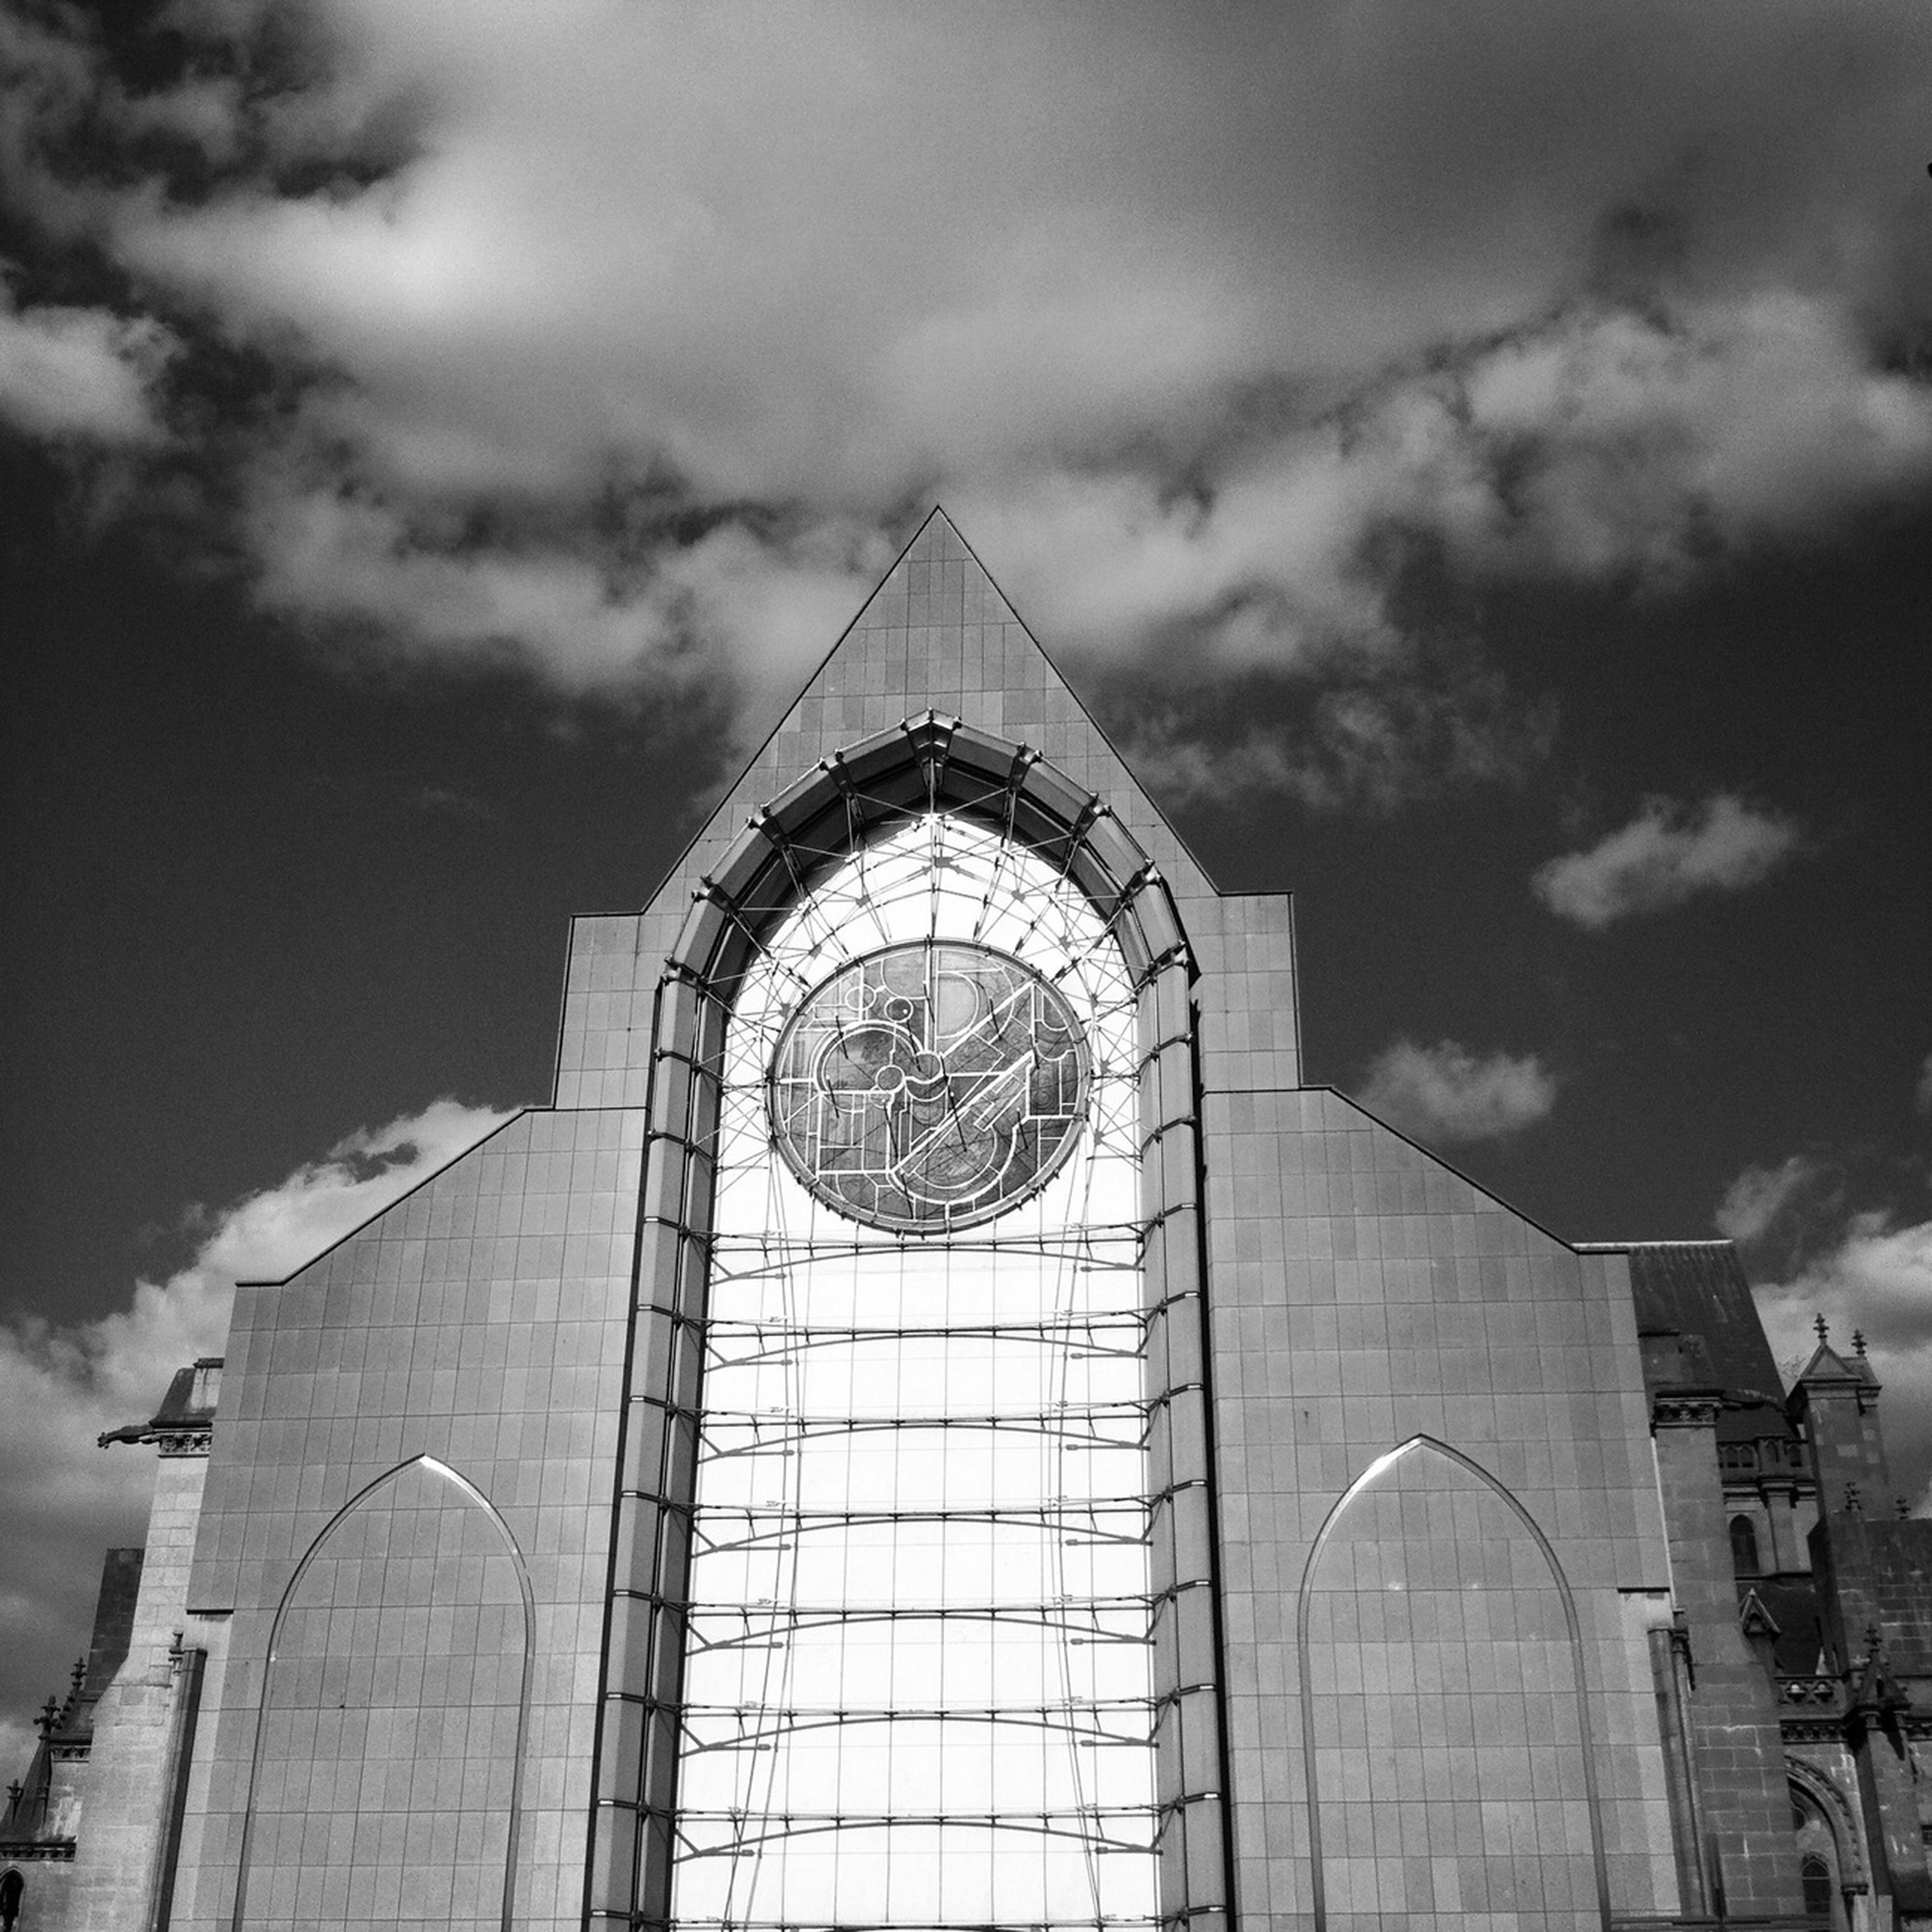 architecture, built structure, low angle view, building exterior, sky, cloud - sky, arch, cloudy, cloud, church, religion, day, place of worship, outdoors, window, no people, history, tower, dome